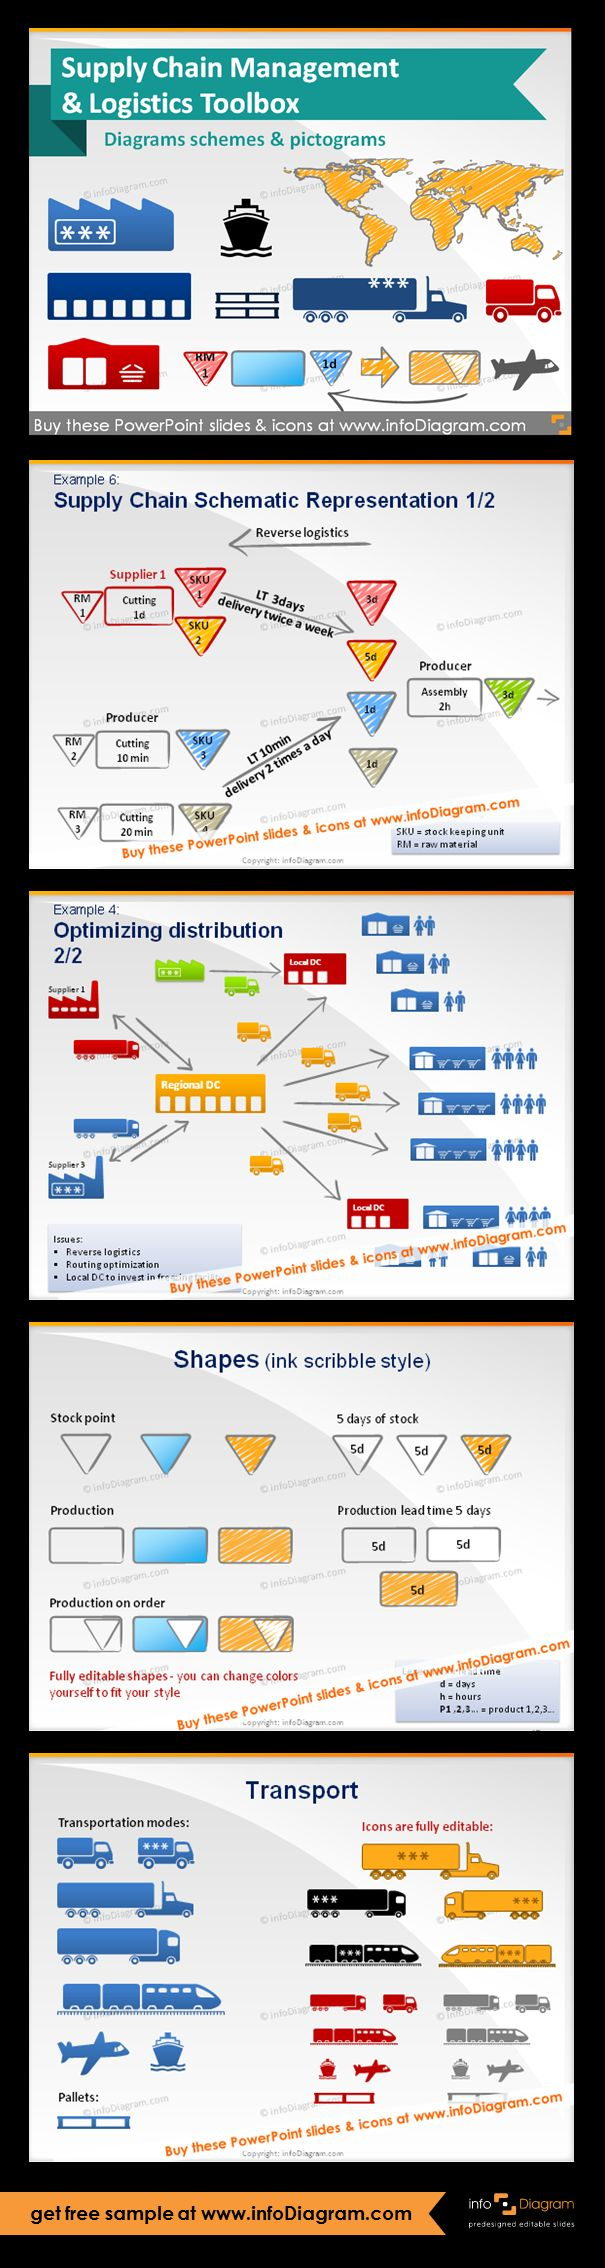 Supply Chain and Logistics schema diagrams & pictogram icons - editable graphical elements for PowerPoint. Fully adaptable vector shapes (color, filling, size). Supply Chain Schematic Representation with a supplier, two producers, reduction of WIP ( reverse logistics, SKU - stock keeping unit, RM - raw material, WIP - work in process). Optimizing distribution usage example. Hand-drawn shapes, symbols of transport.